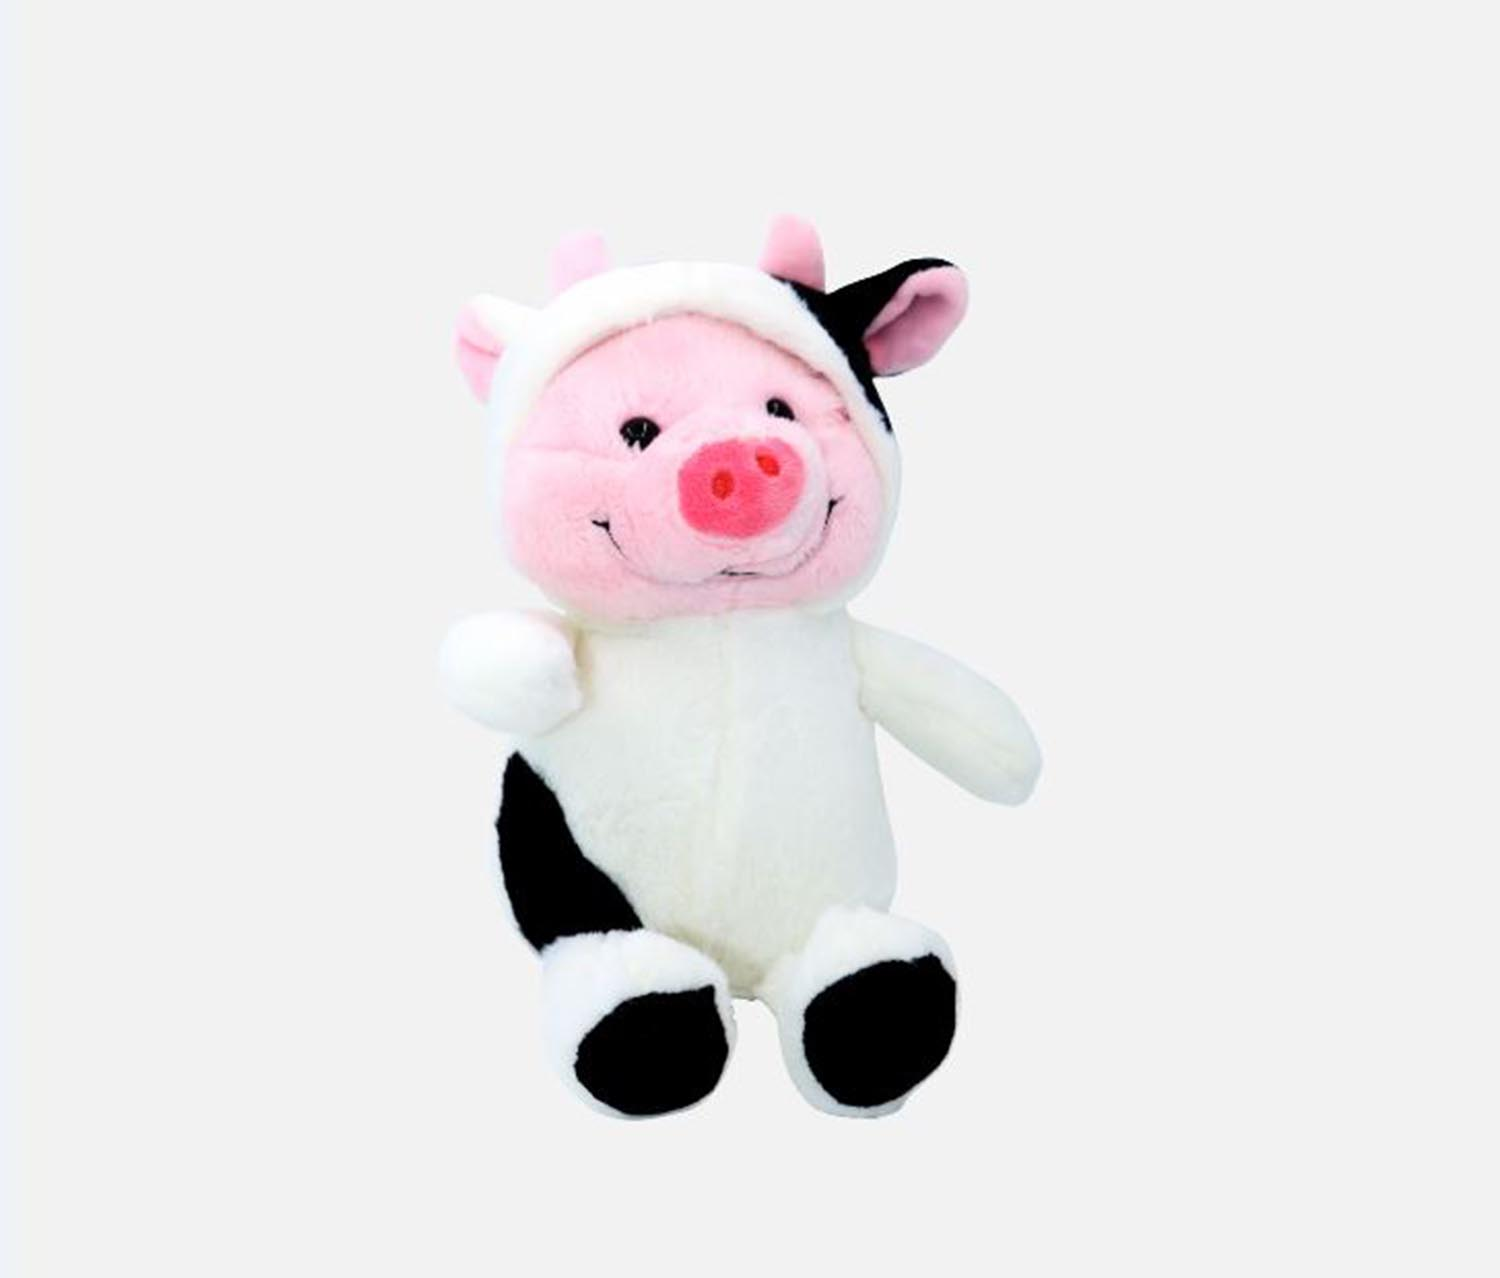 Plush Toy Cow Hoodie, White/Black/White